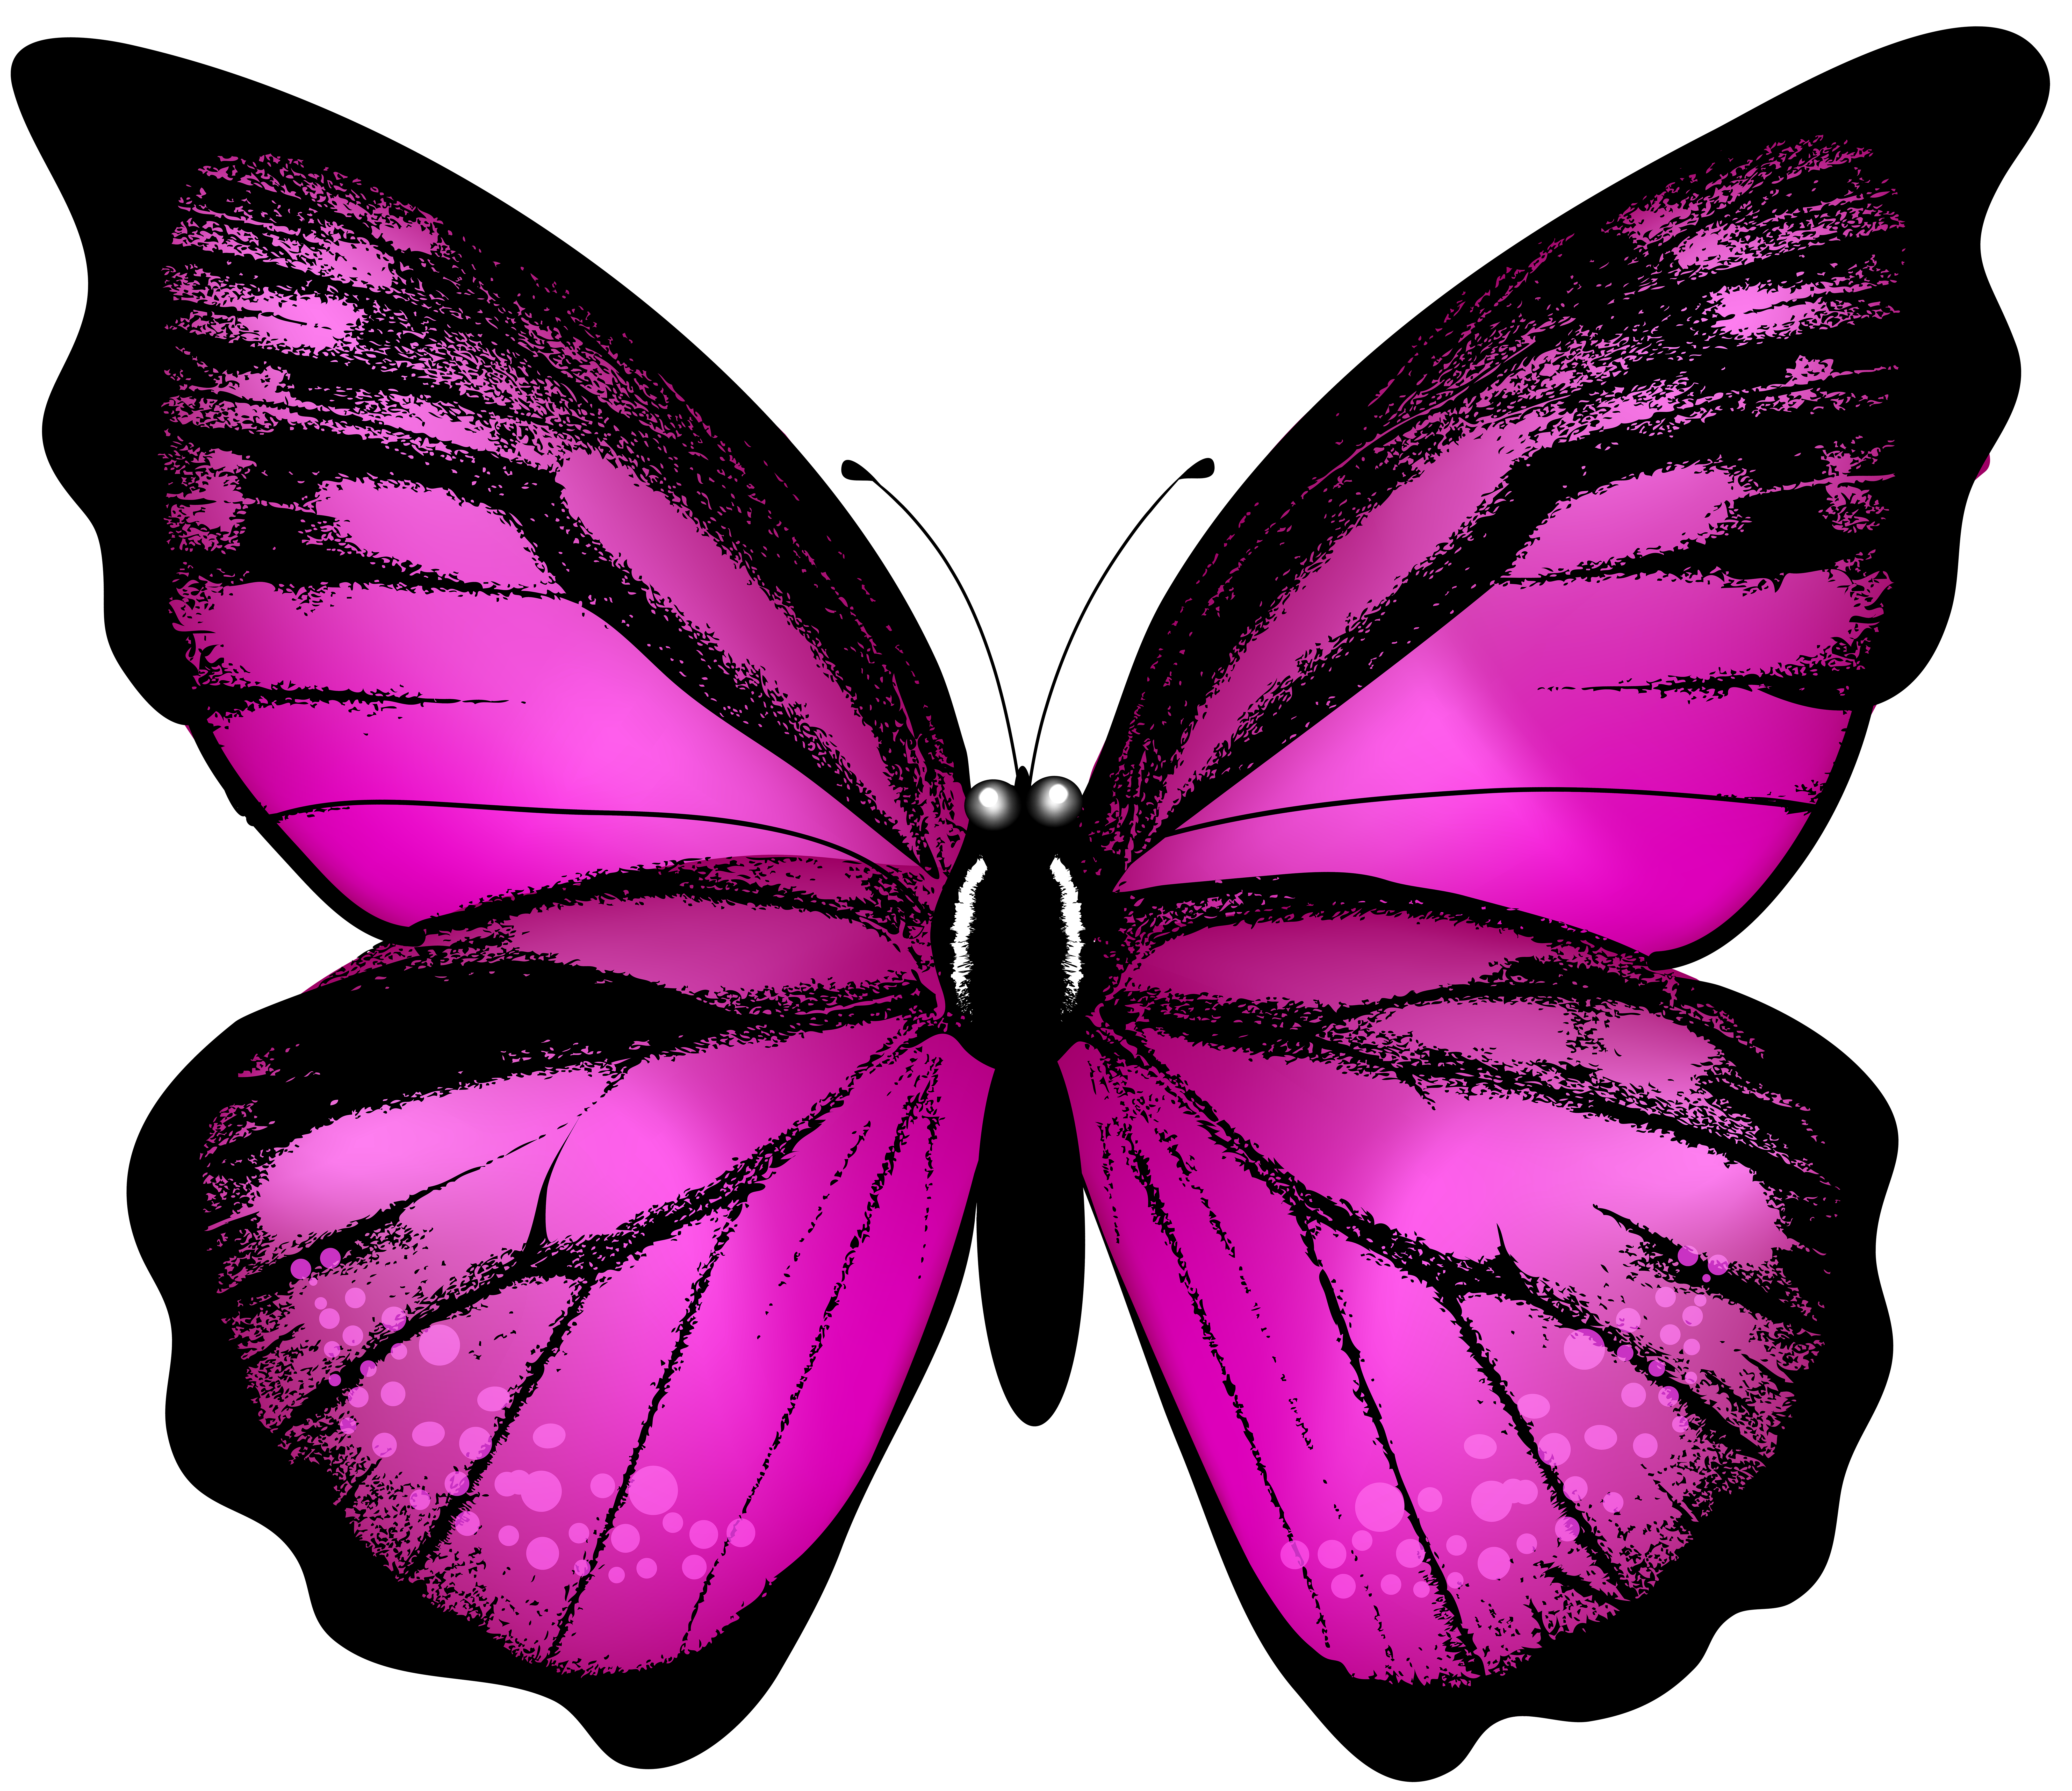 Pink Butterfly Transparent Clip Art Image | Gallery Yopriceville ...